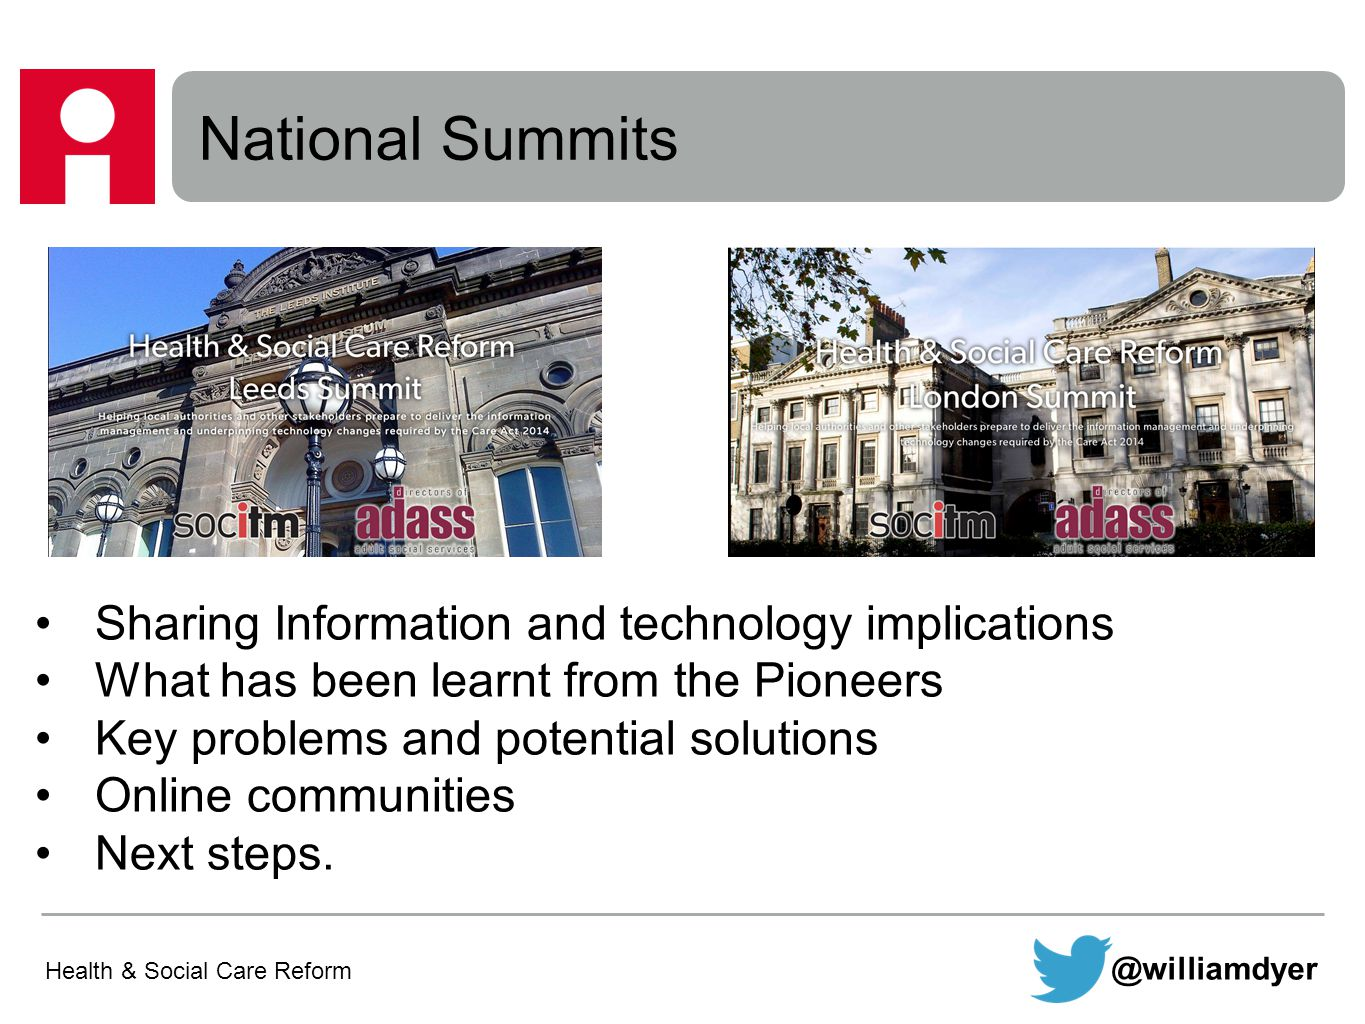 Health & Social Care Reform National Summits @williamdyer Sharing Information and technology implications What has been learnt from the Pioneers Key problems and potential solutions Online communities Next steps.